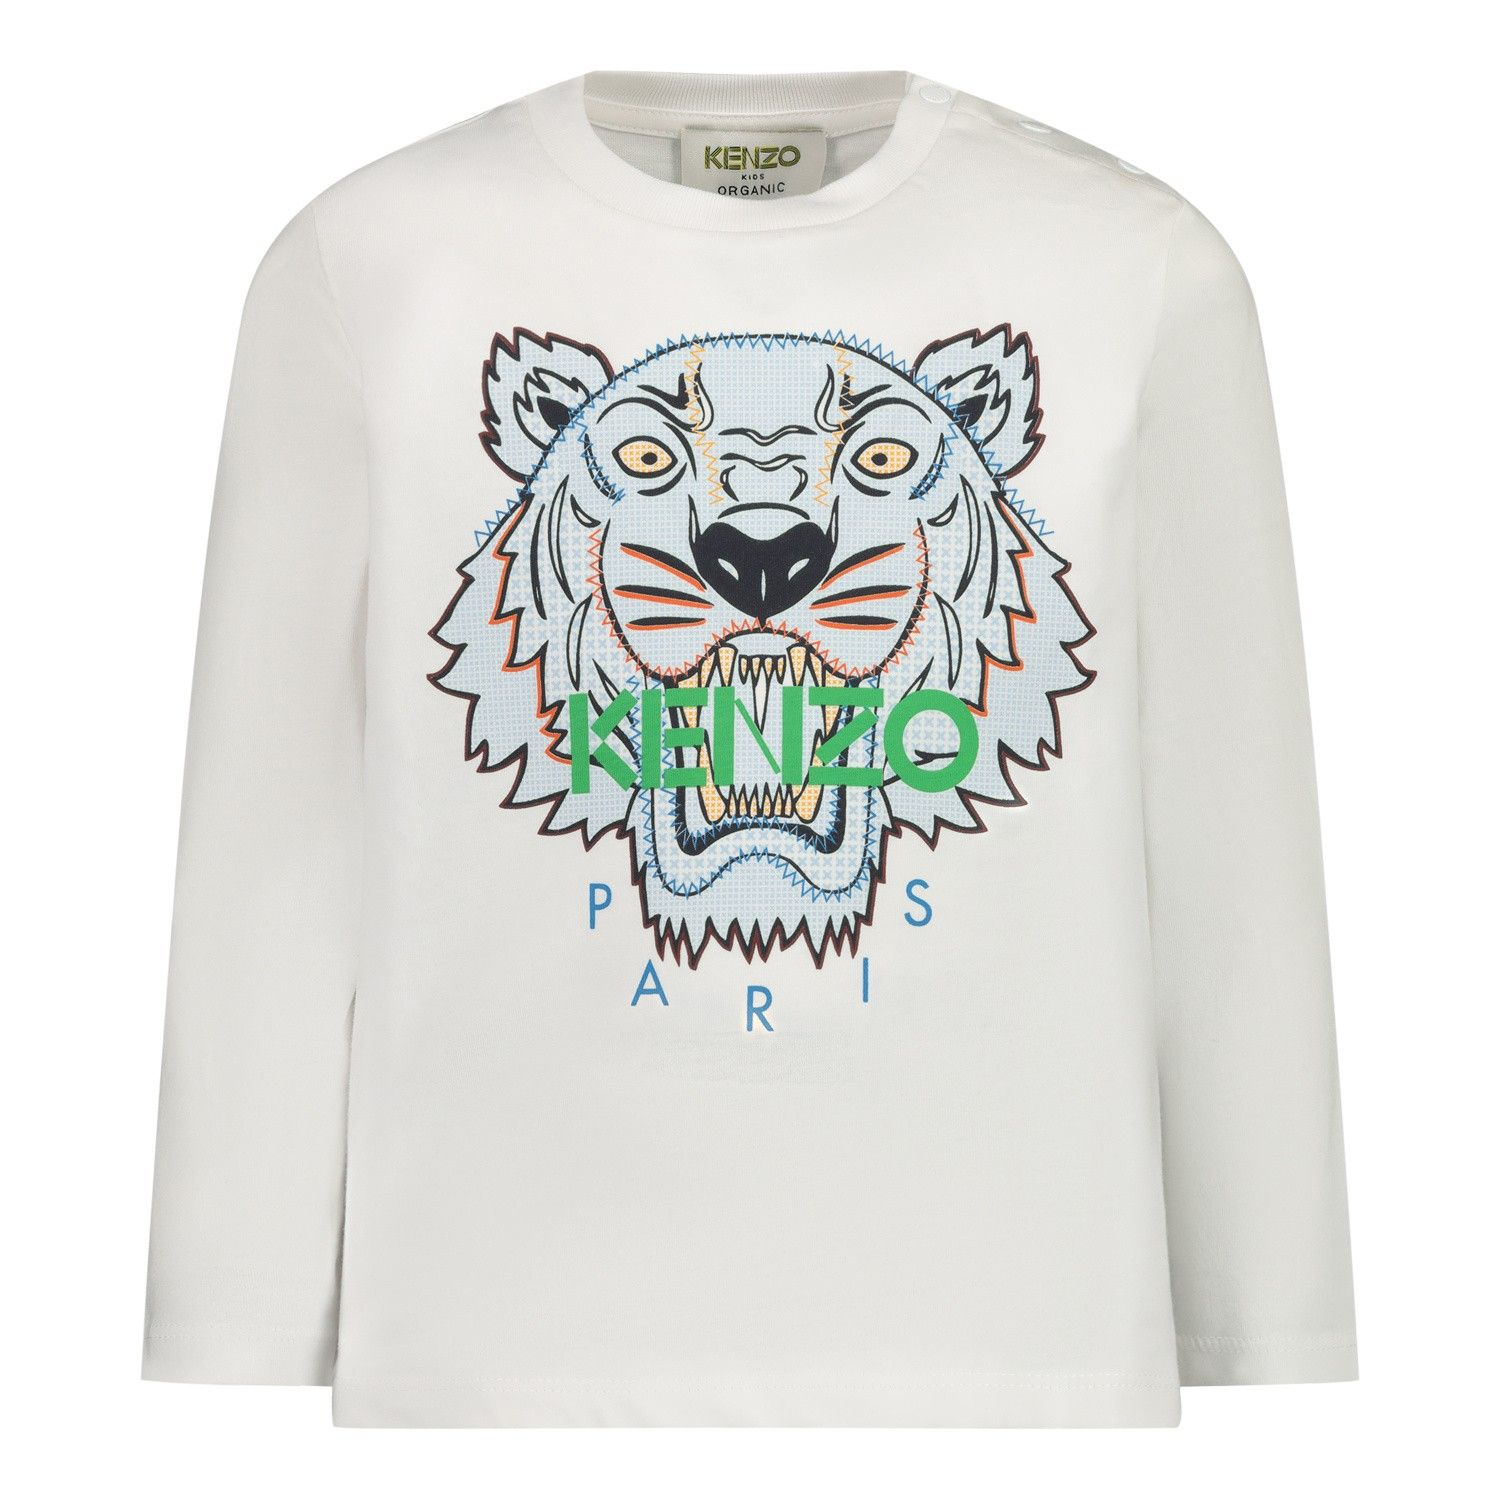 Picture of Kenzo KR10587 baby shirt white